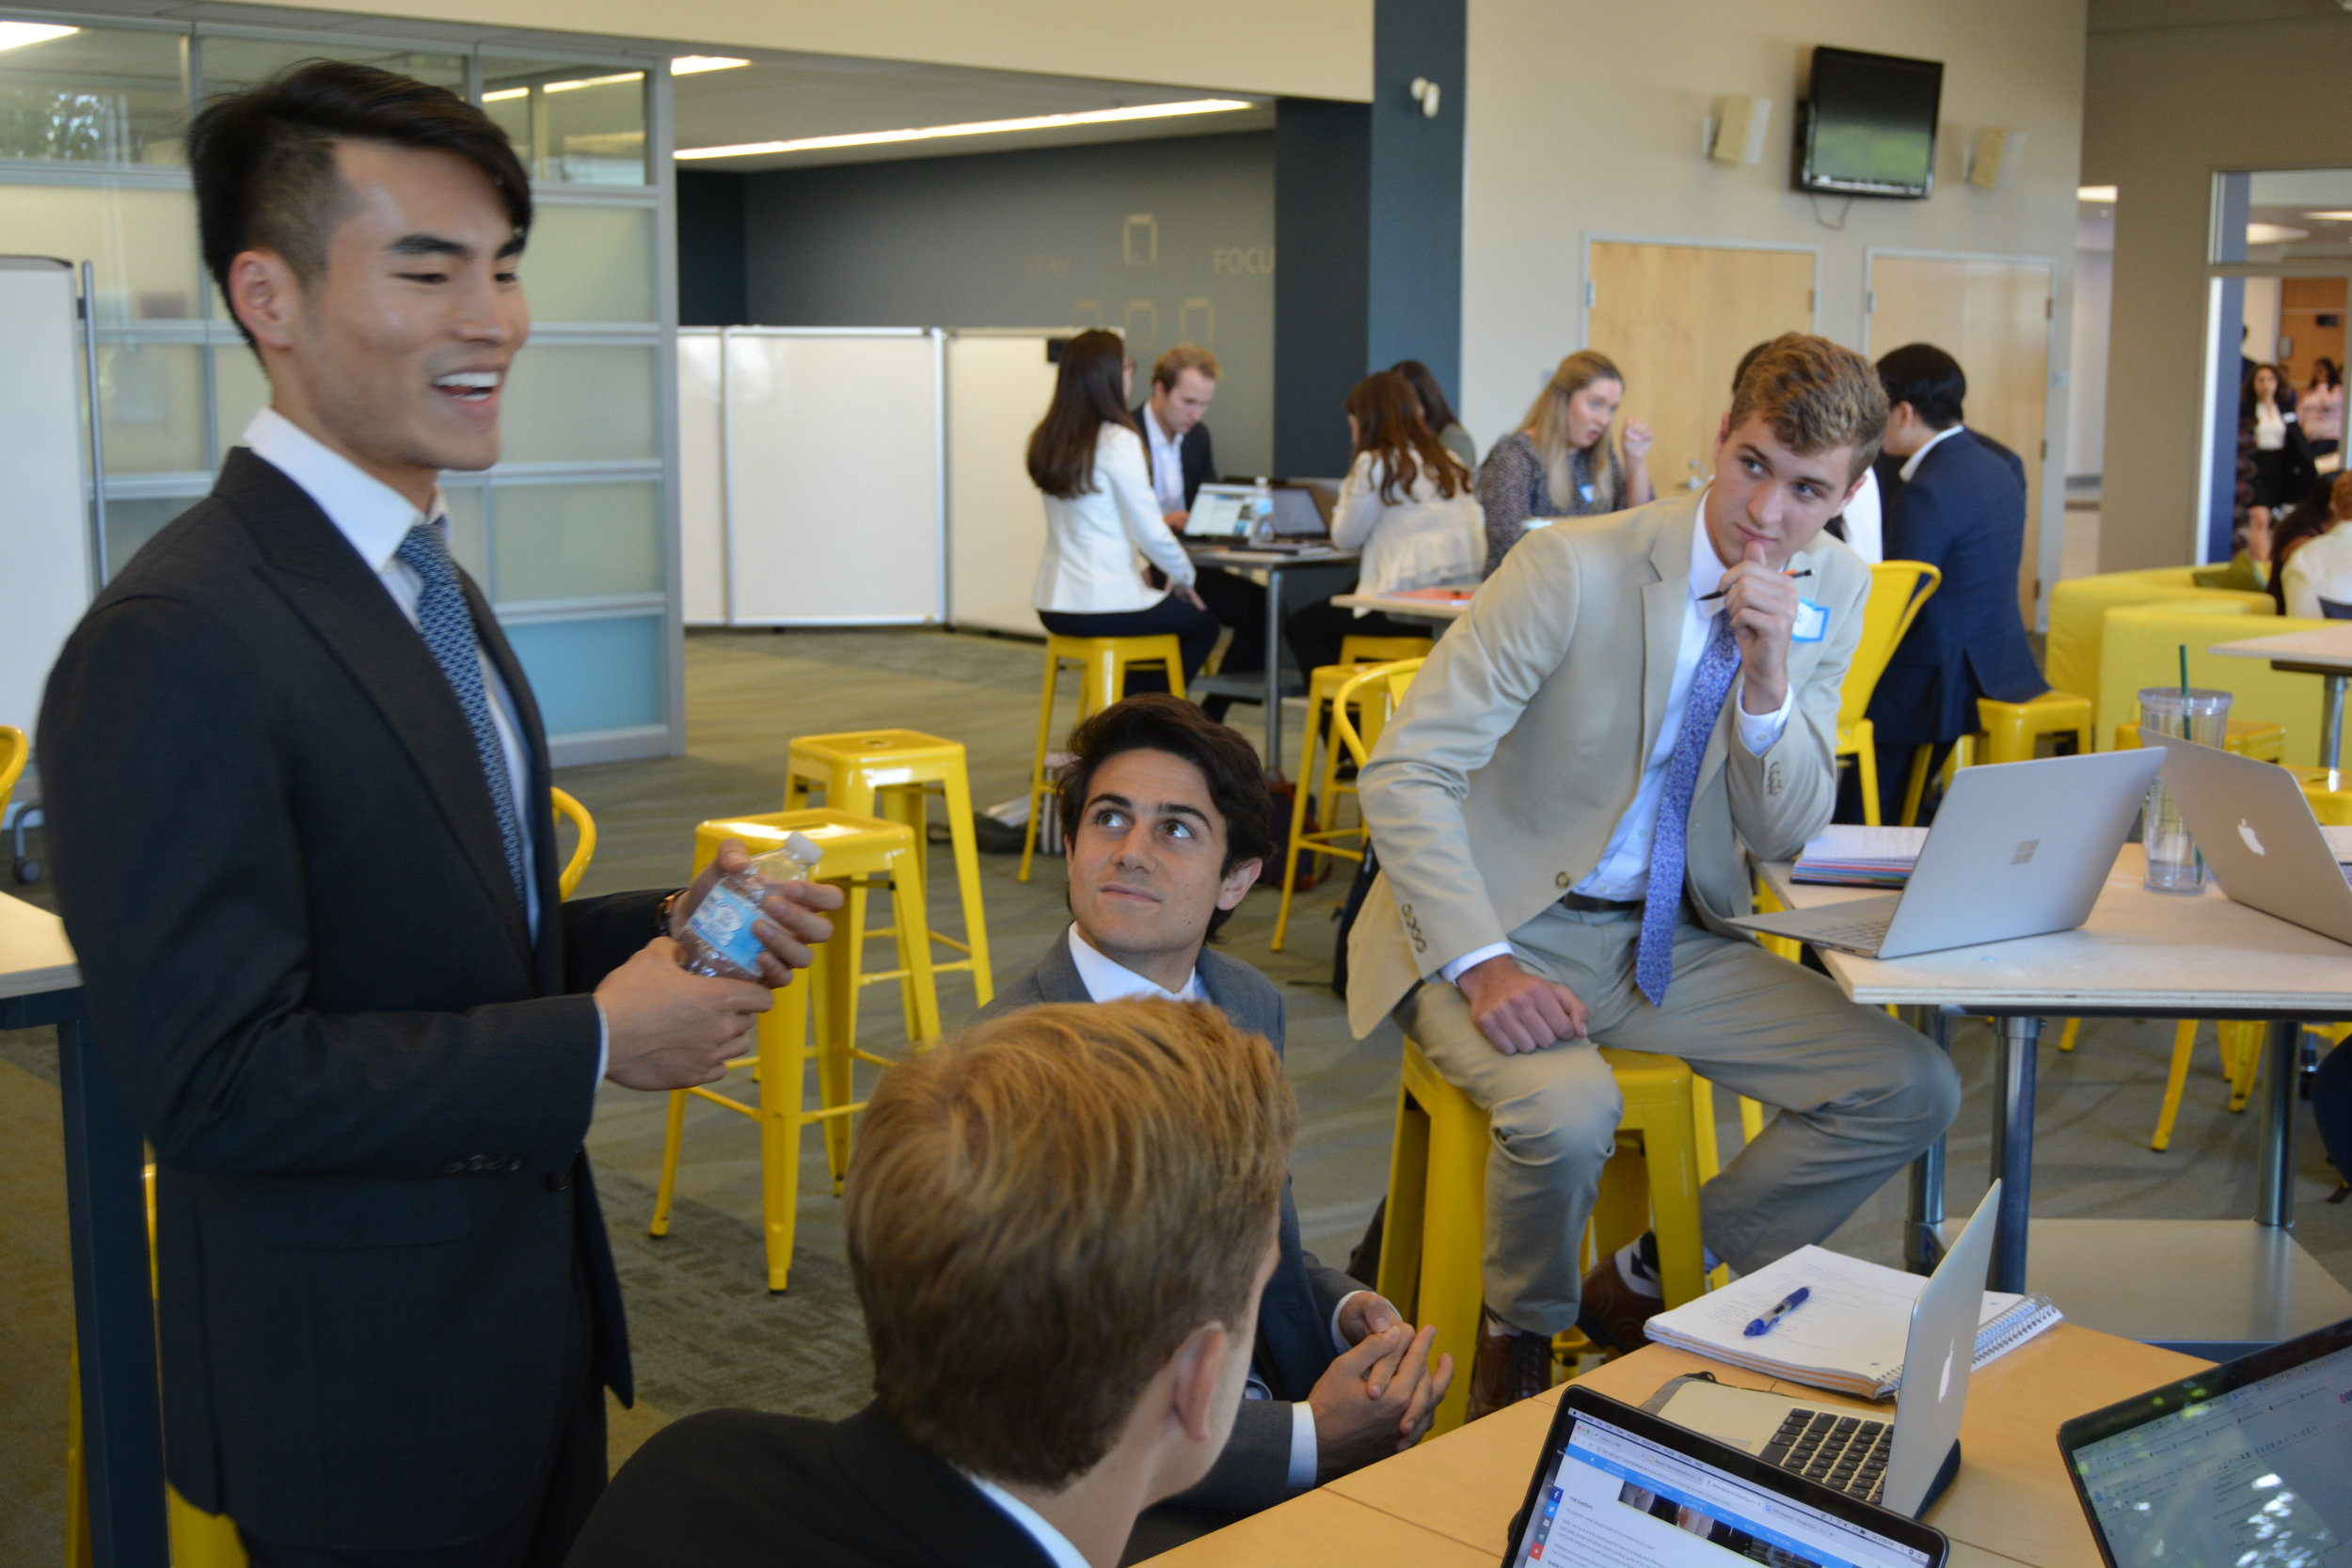 Viet, McKinsey alum & Harvard MBA candidate guides on consulting project during Notre Dame event.